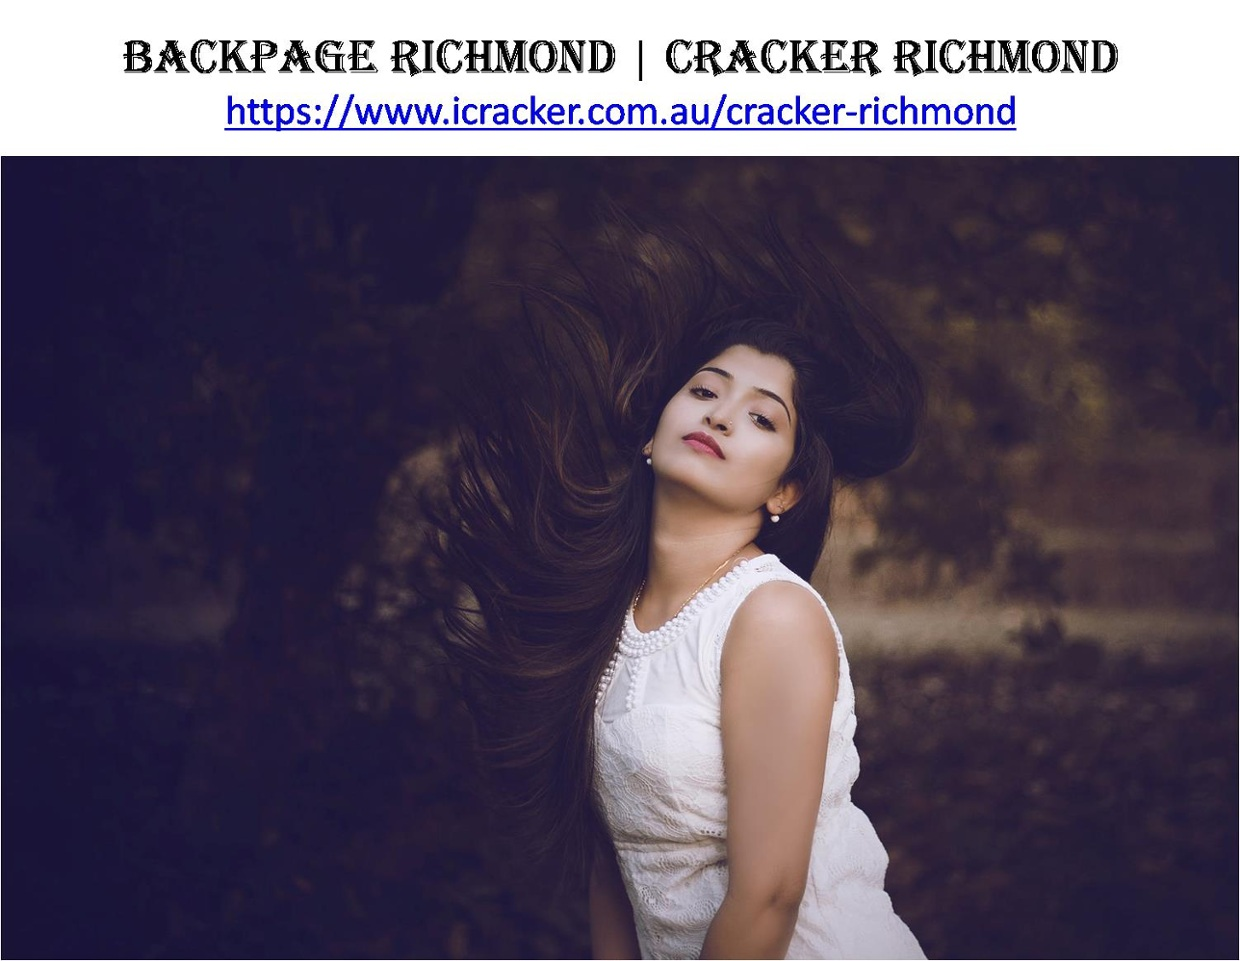 Backpages Richmond